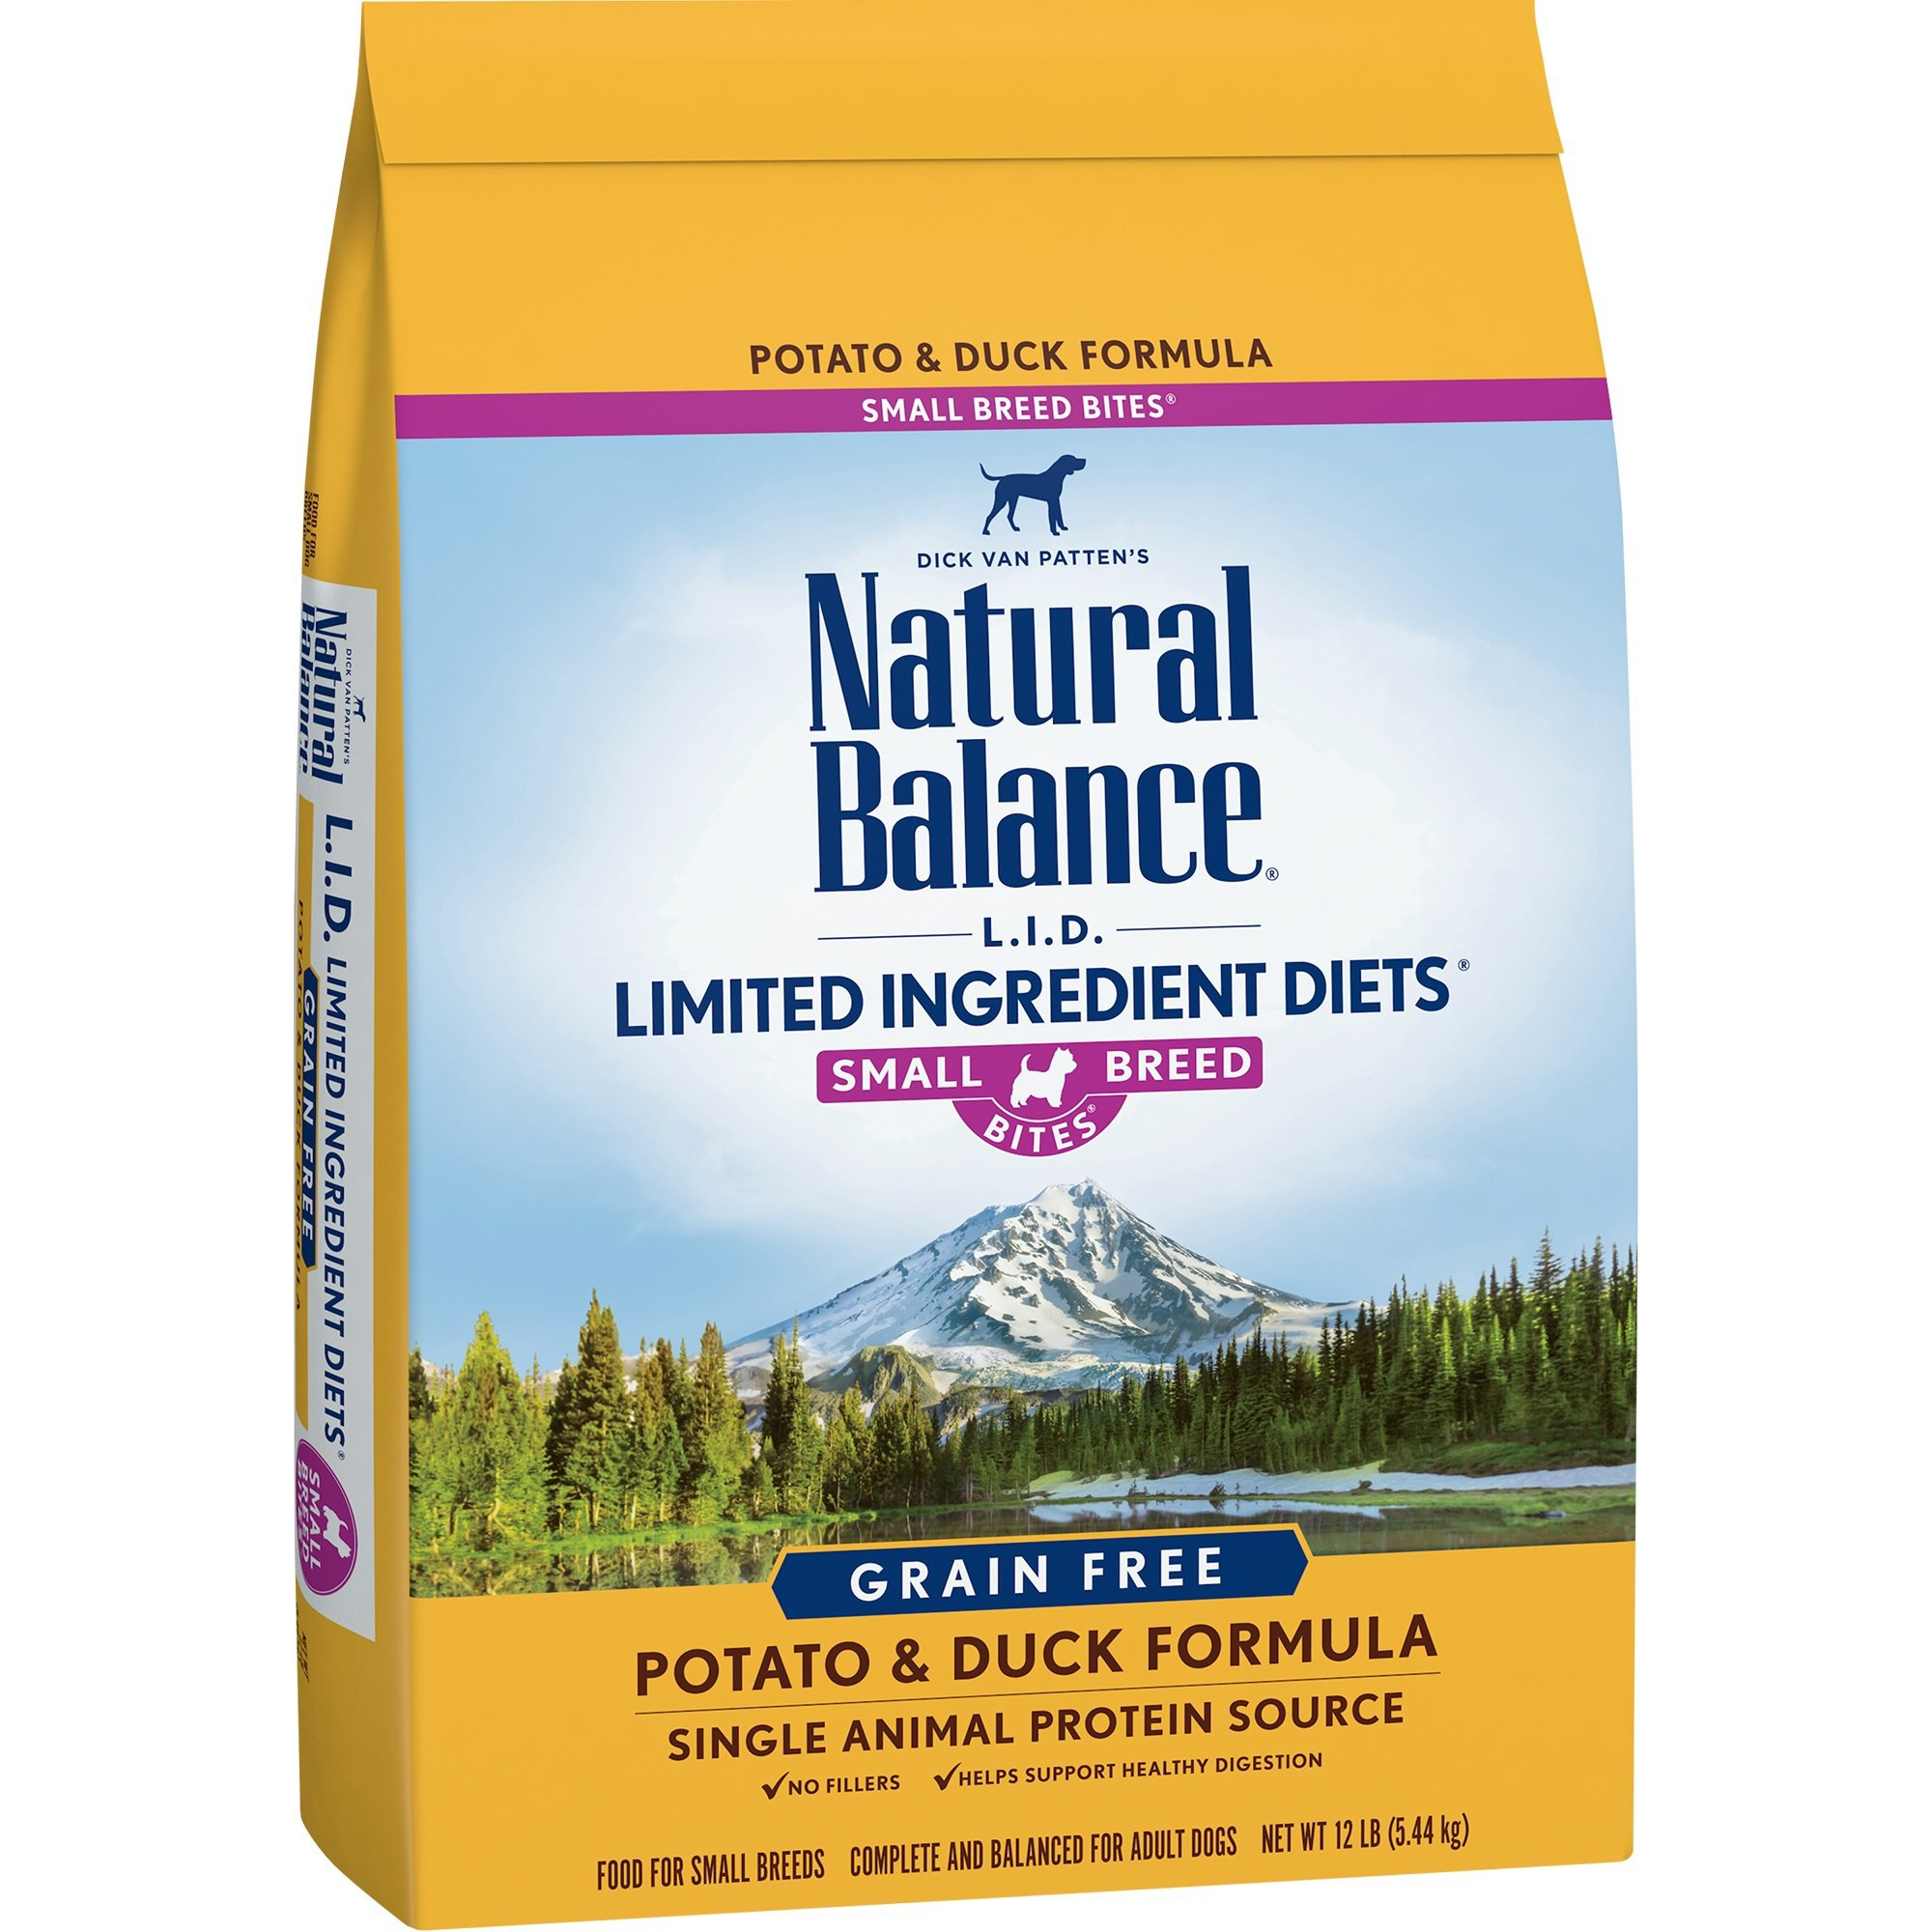 Natural Balance Small Breed Bites L.I.D. Limited Ingredient Diets Grain-Free Potato & Duck Formula Dry Dog Food, 12 lbs.